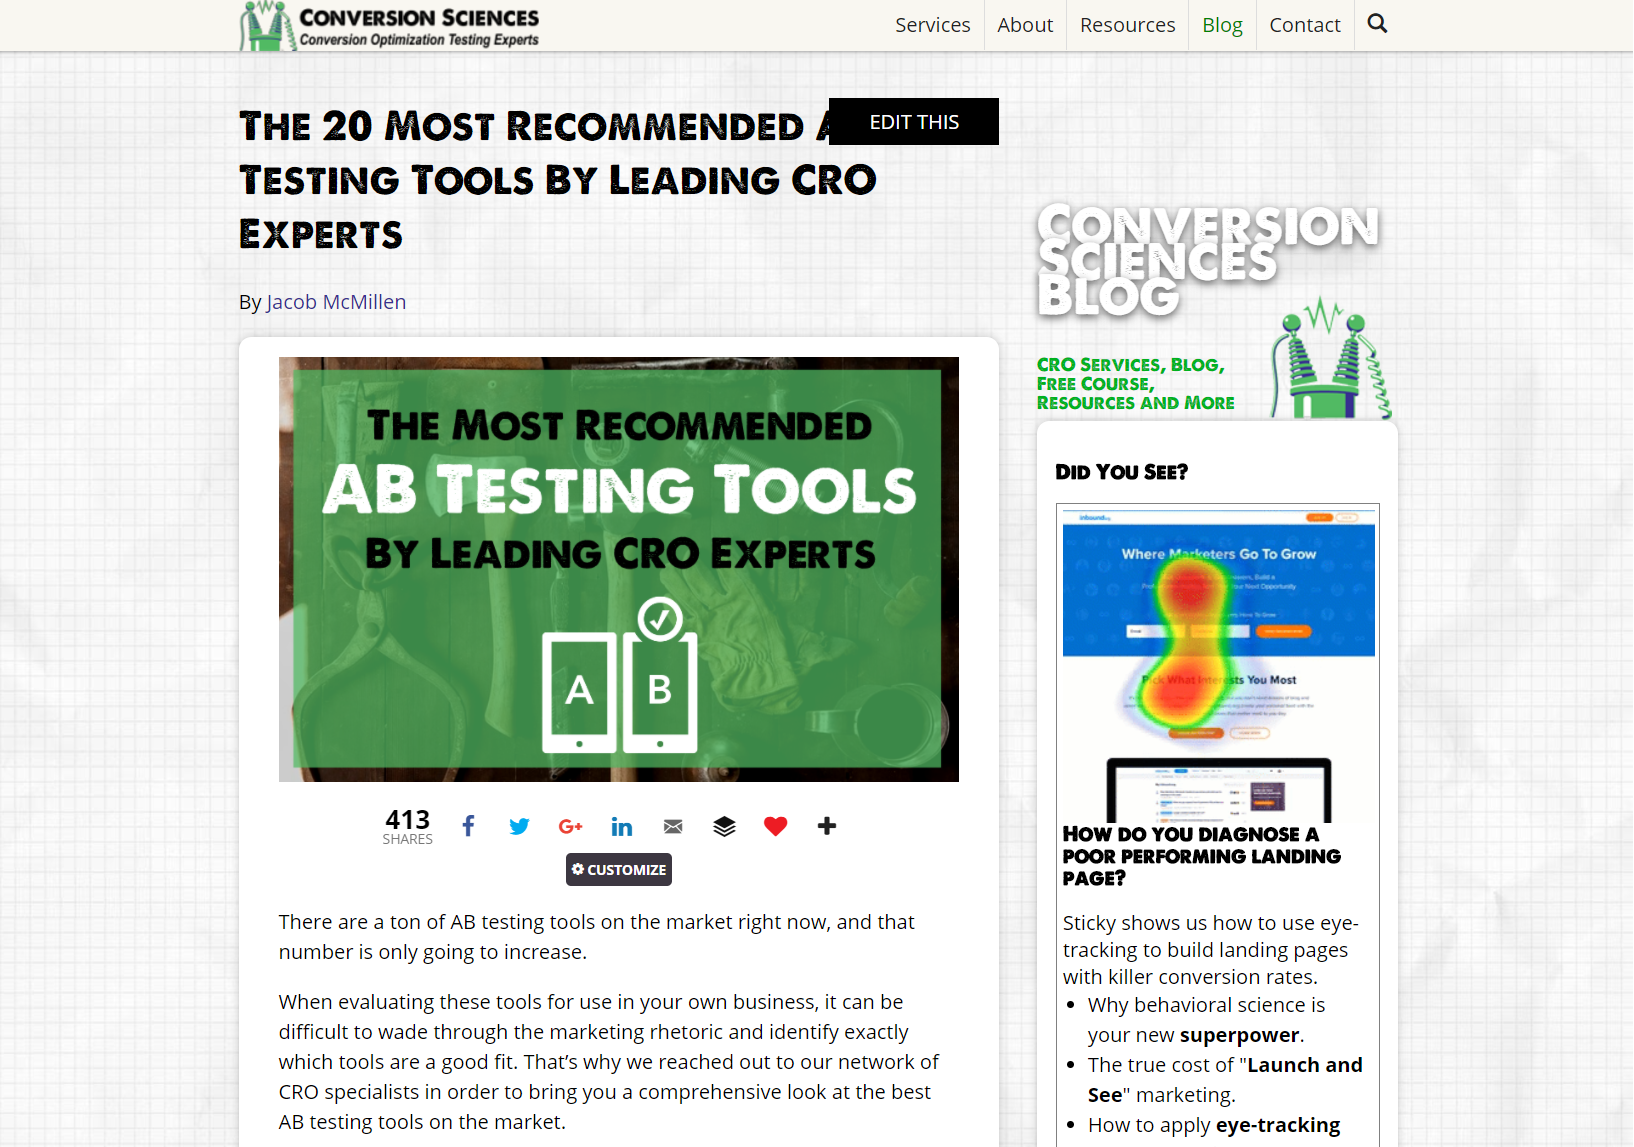 Conversion Sciences review of top A/B testing tools